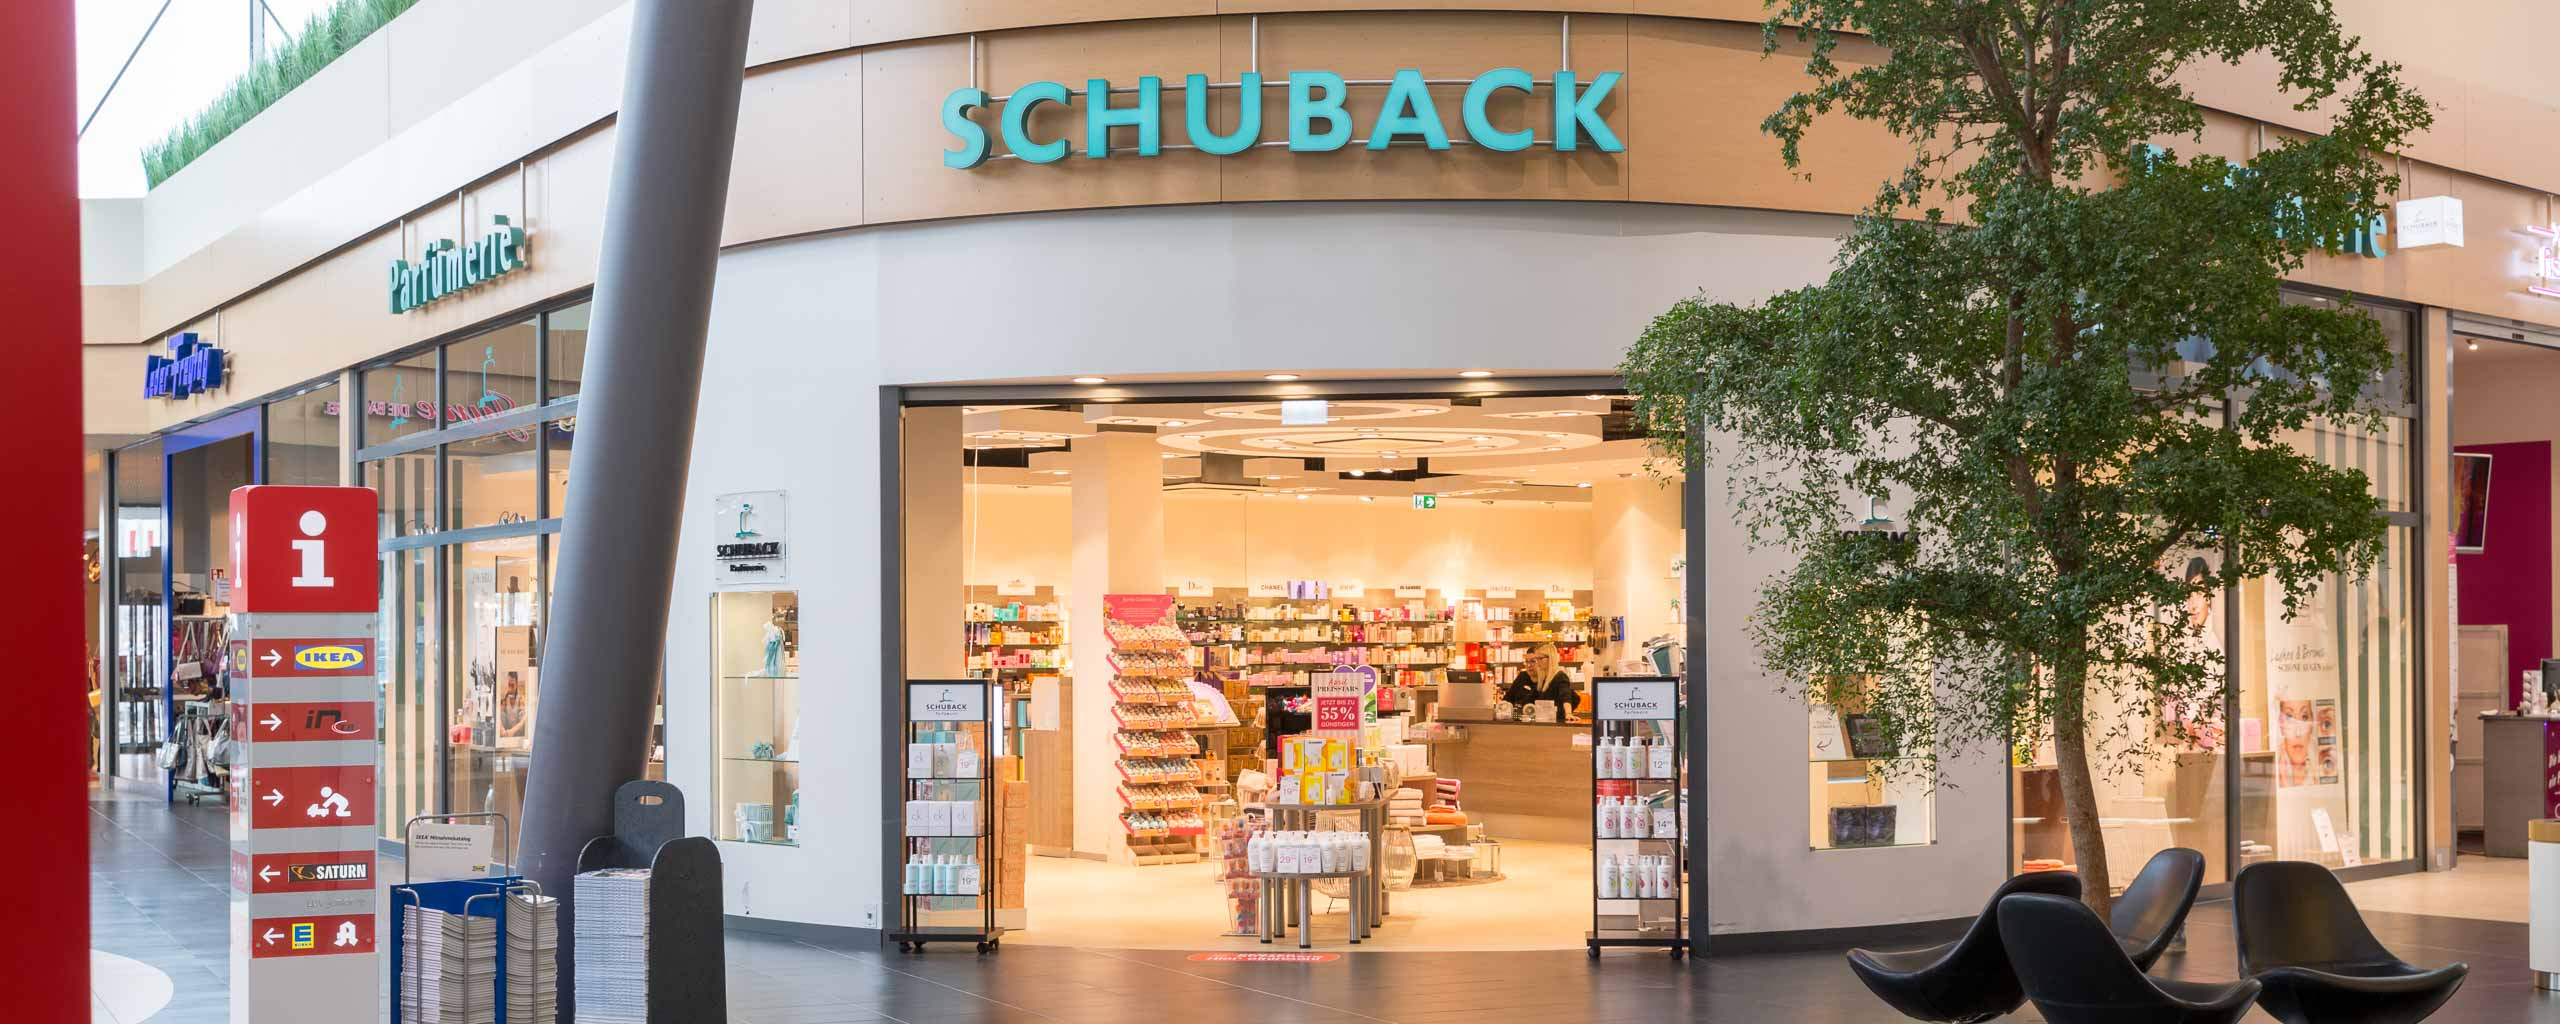 Schuback im LUV SHOPPING in Lübeck